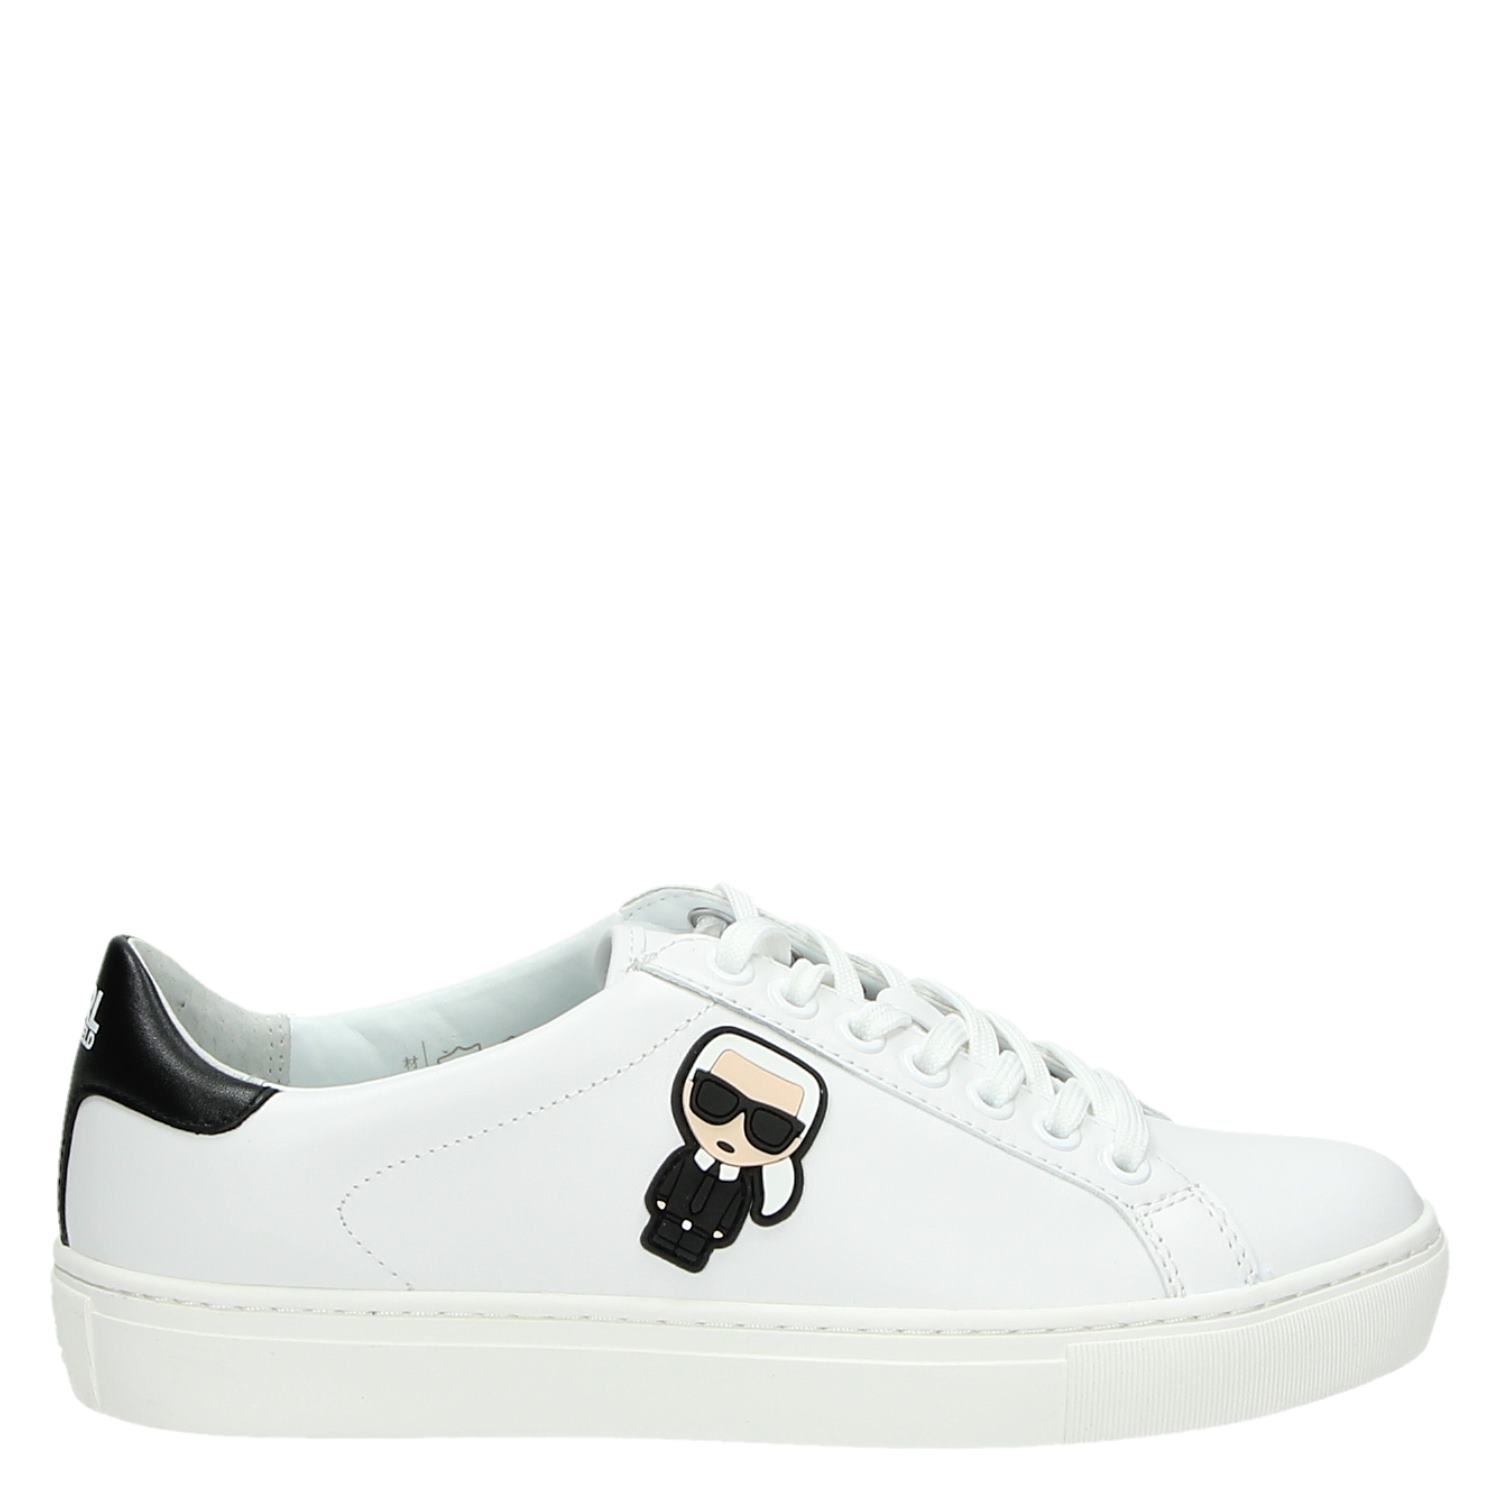 Wit Kupsole Dames Karl Lagerfeld Lage Sneakers 0XCxqOFn5w